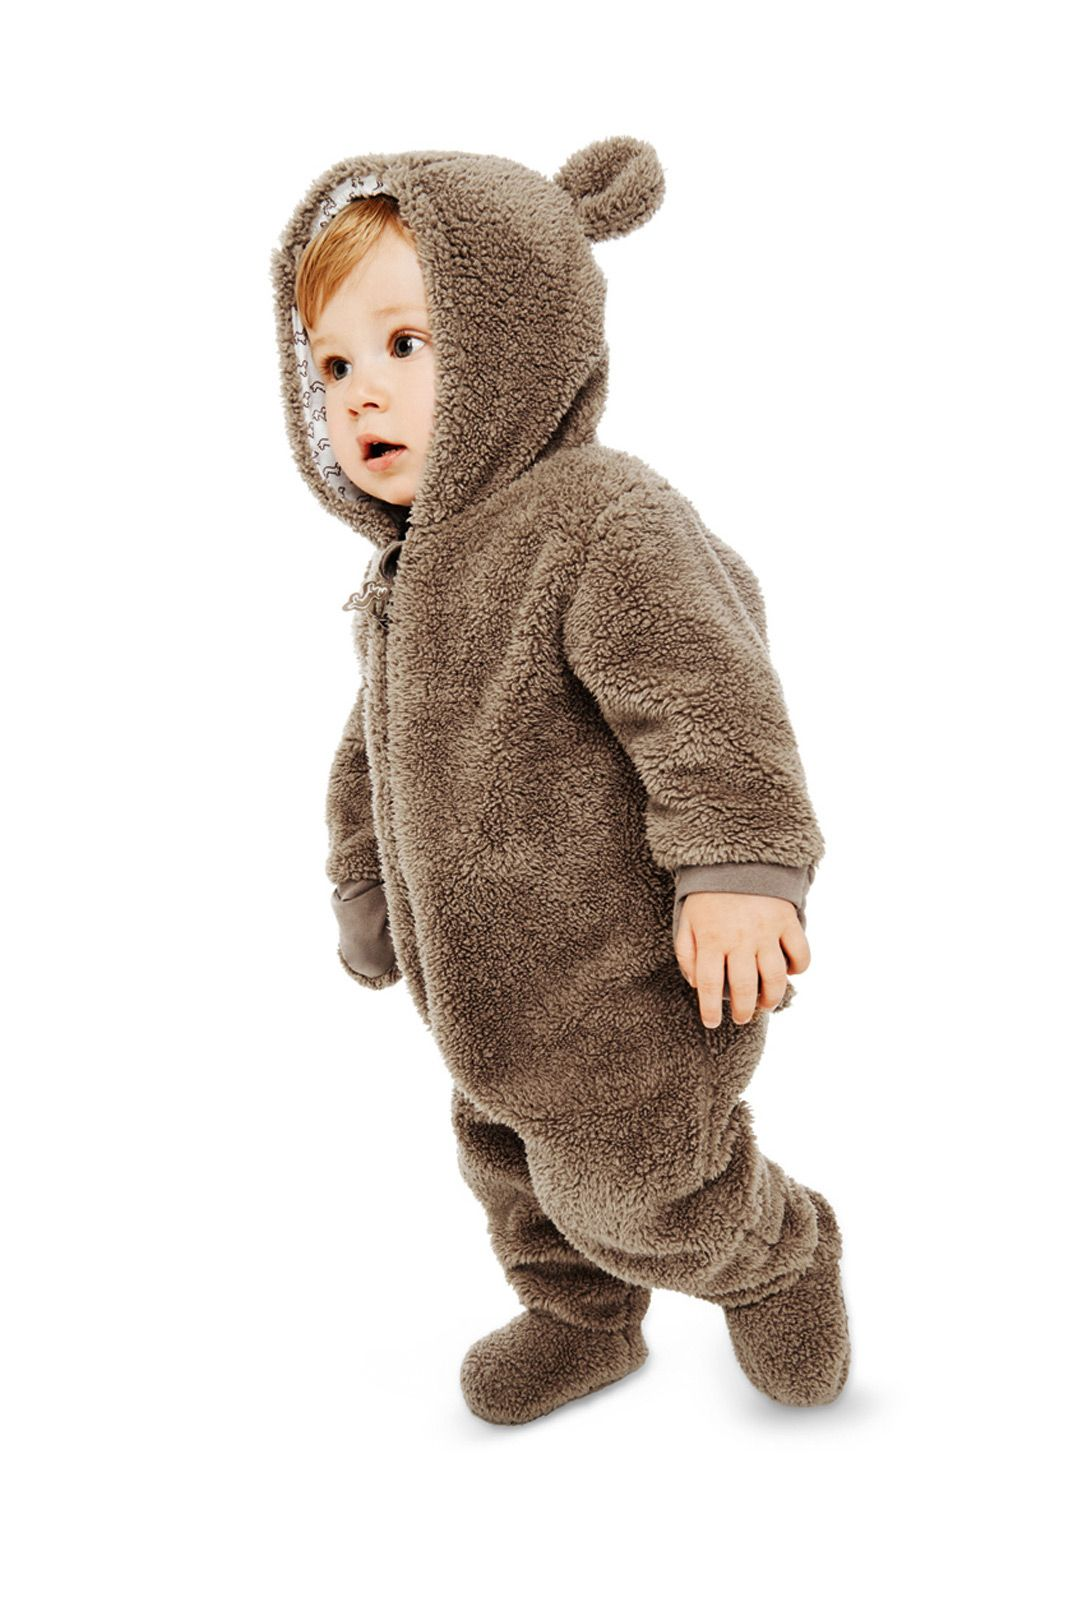 Clothes Baby Romper Animal Fleece Coat Bear Rabbit Sheep Winter Warm Coat